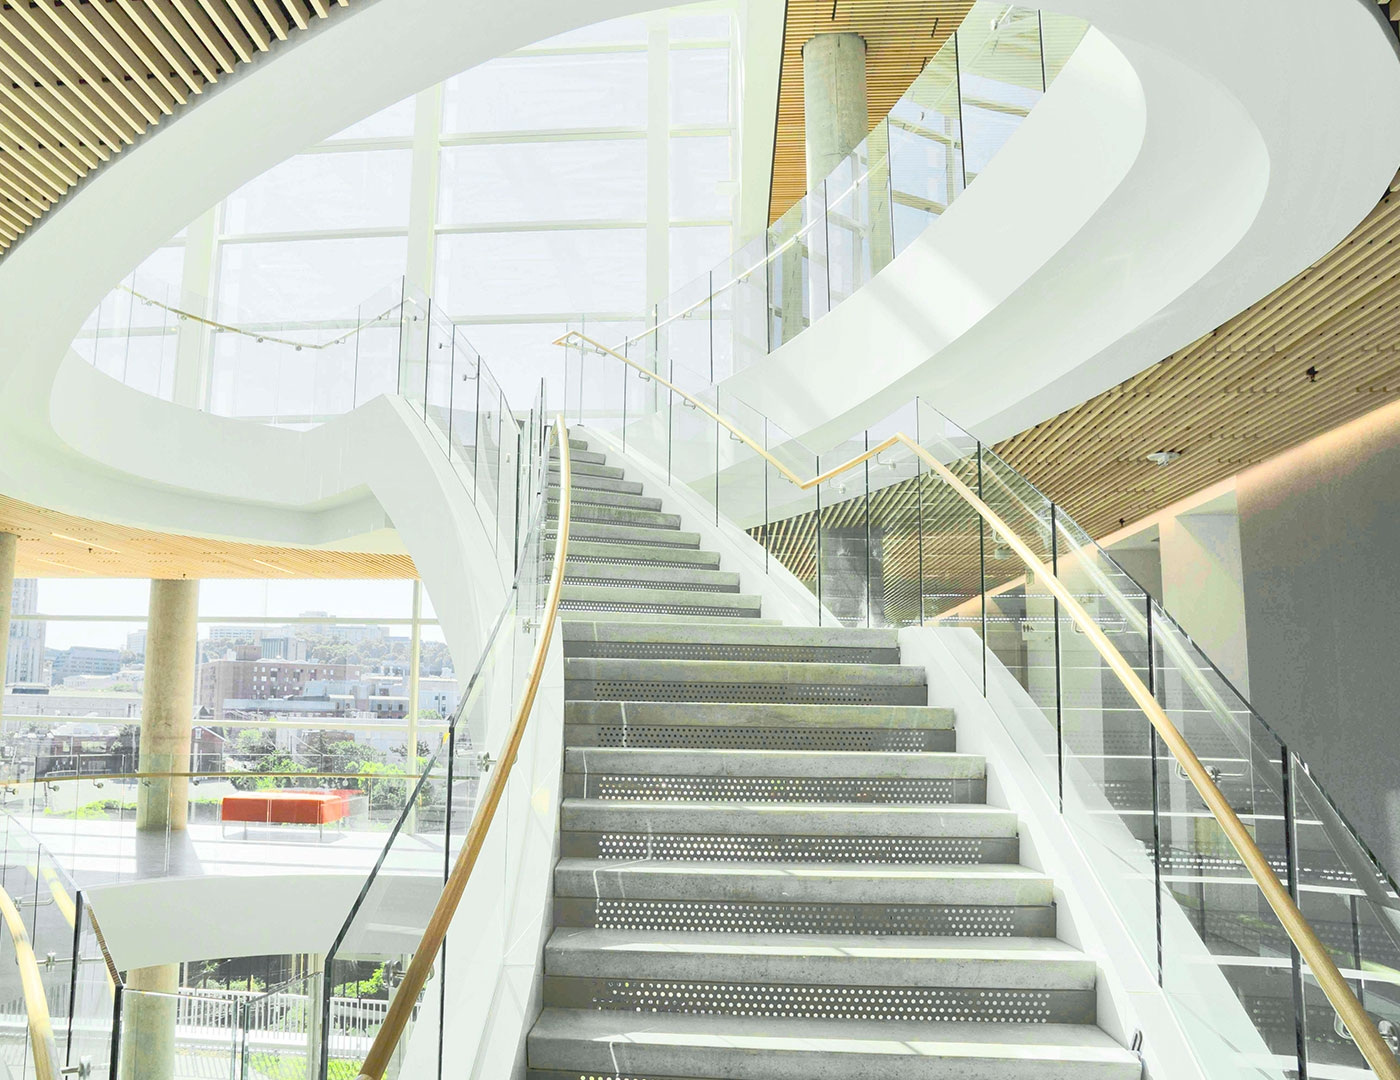 Base Shoe Commercial Glass Railing Trex Commercial Products   Glass Balustrade Stairs Near Me   Railing Systems   Frameless Glass   Deck Railing   Handrails   Metal